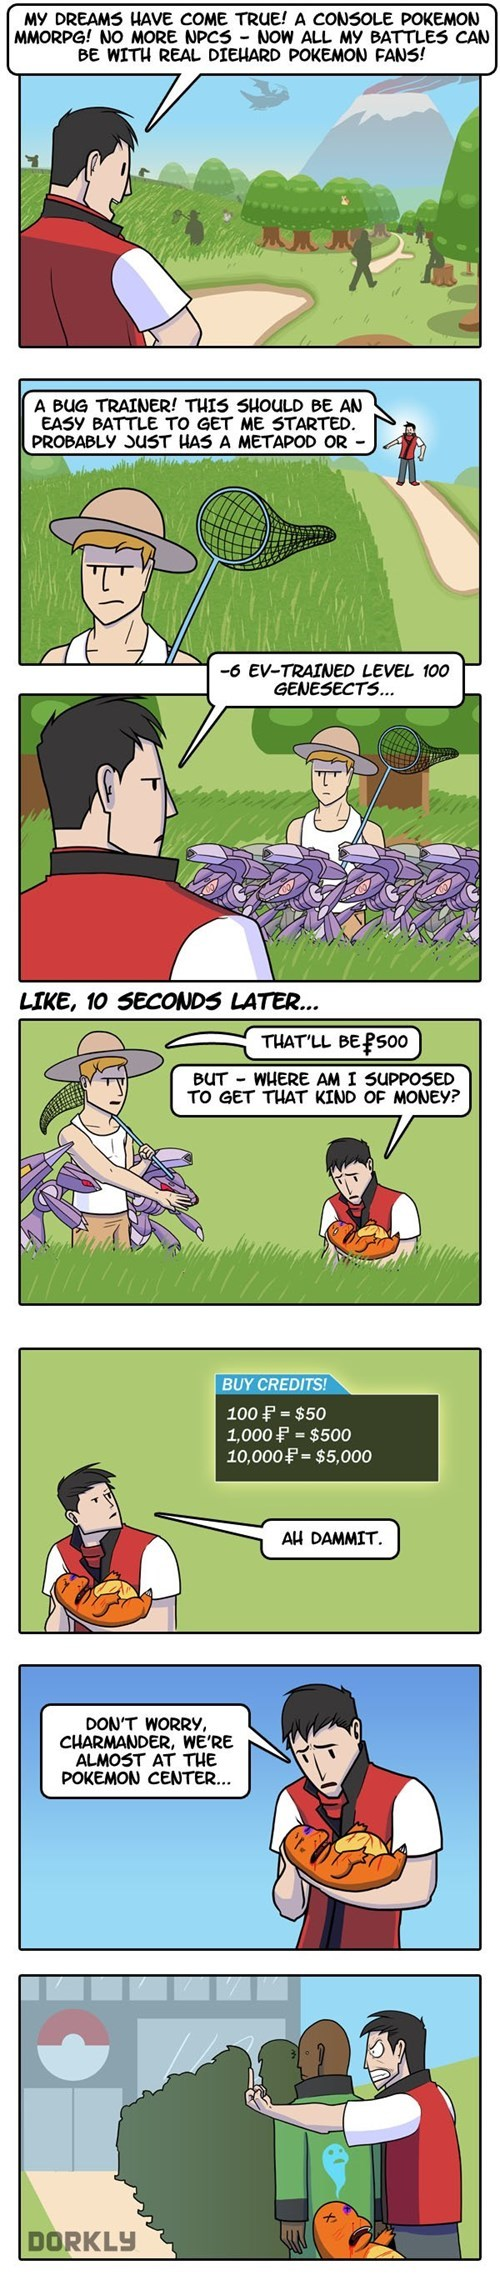 Pokémon dorkly web comics MMO